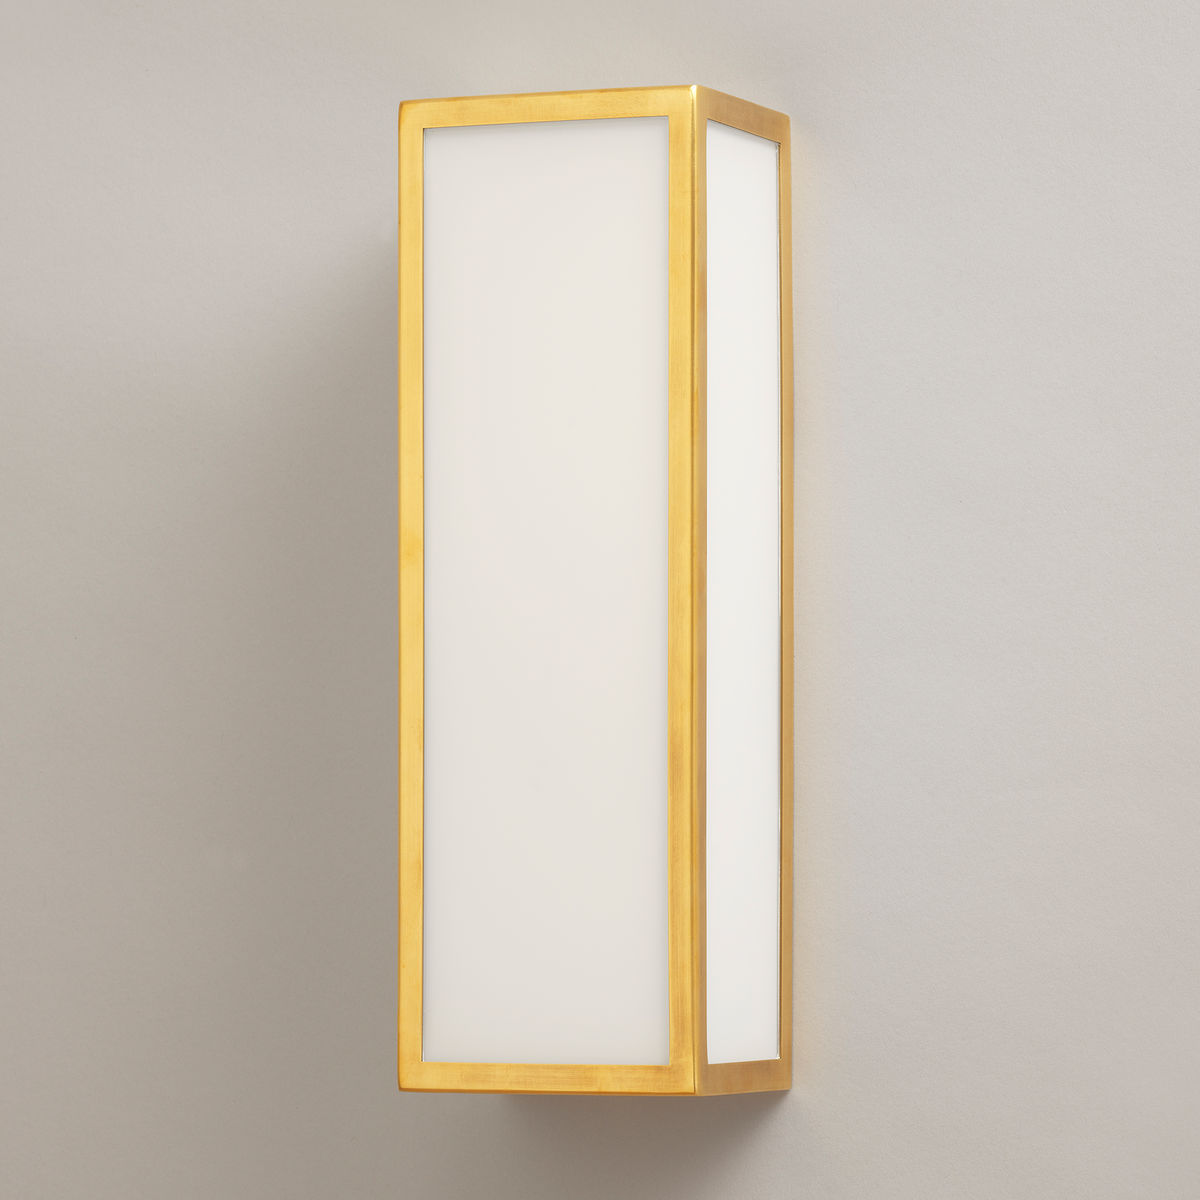 Beverley Bathroom Wall Light-Brass | Nicholas Engert Interiors